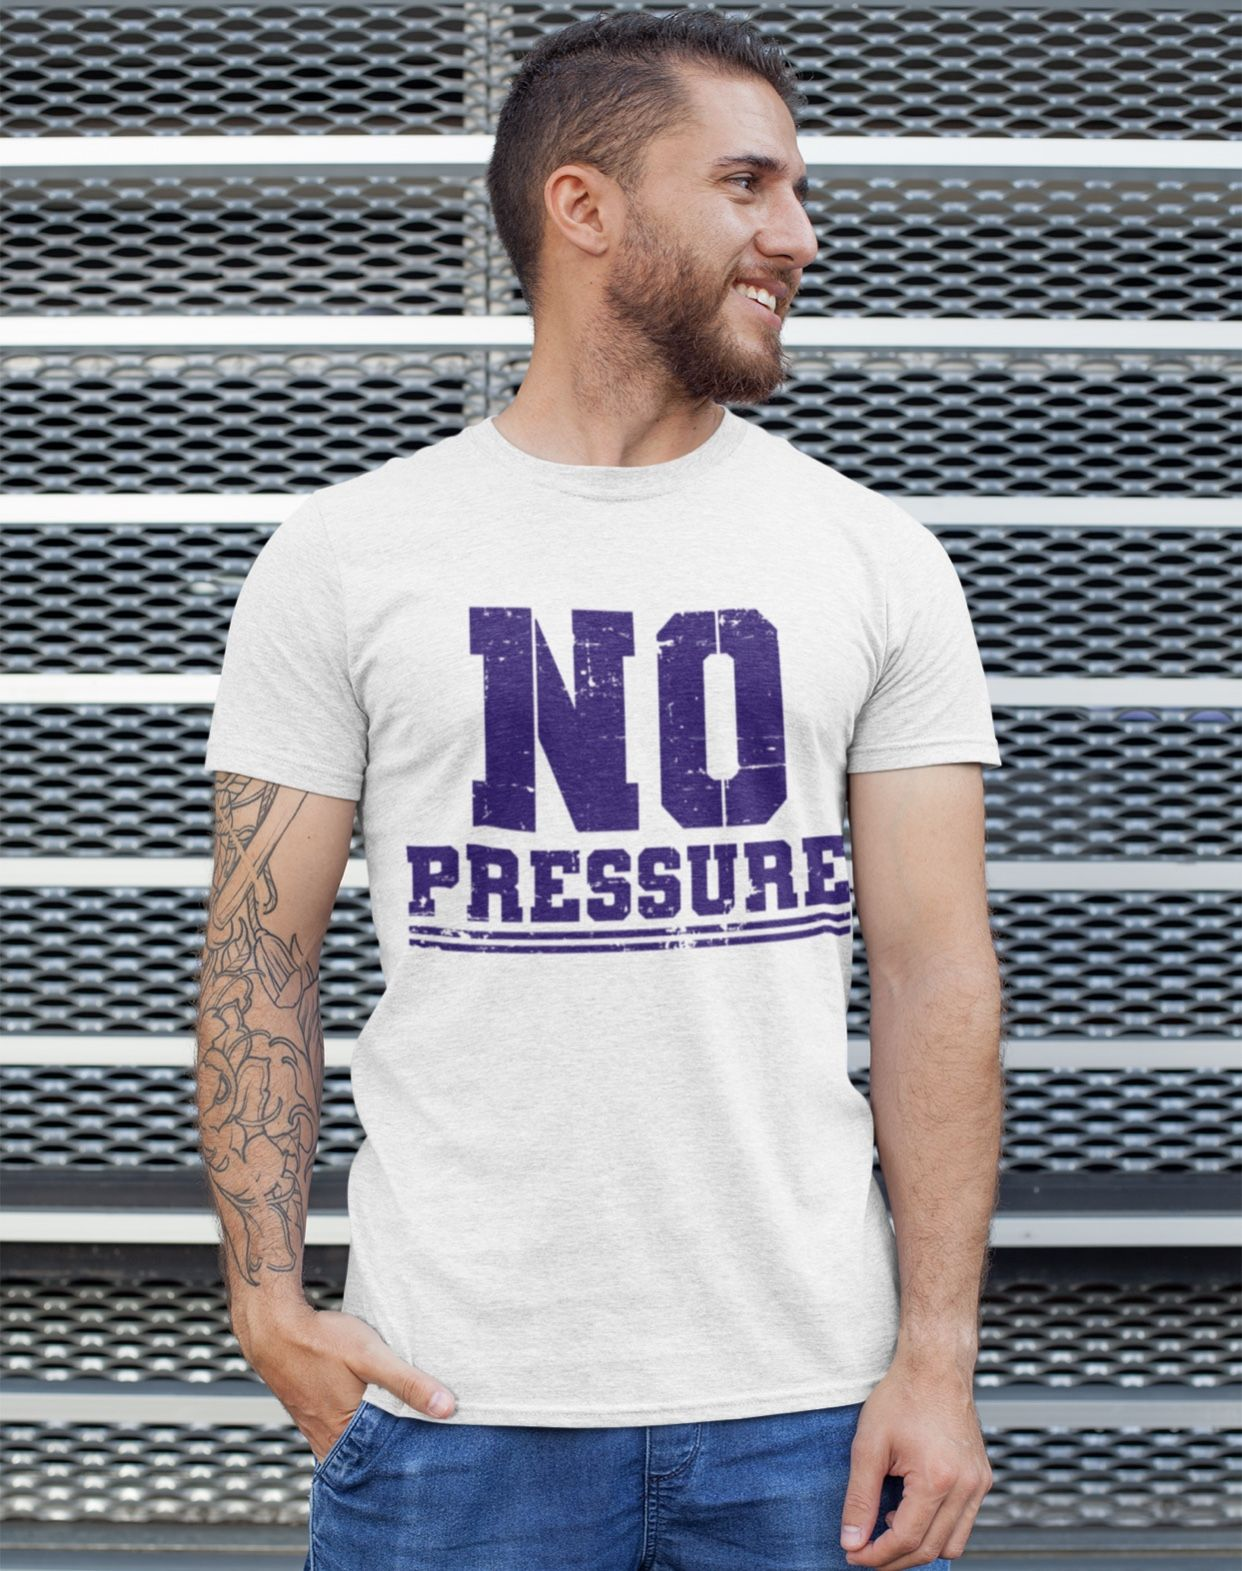 : Must Have No Pressure  No sweat, sarcasm tshirt. Cool gym workout tee. Casual daily wear or work attire to show you not forcing it. and that you are fierce, fearless & driven. Nice training shirt for a sports athlete, police officer, military, navy or army cadet.